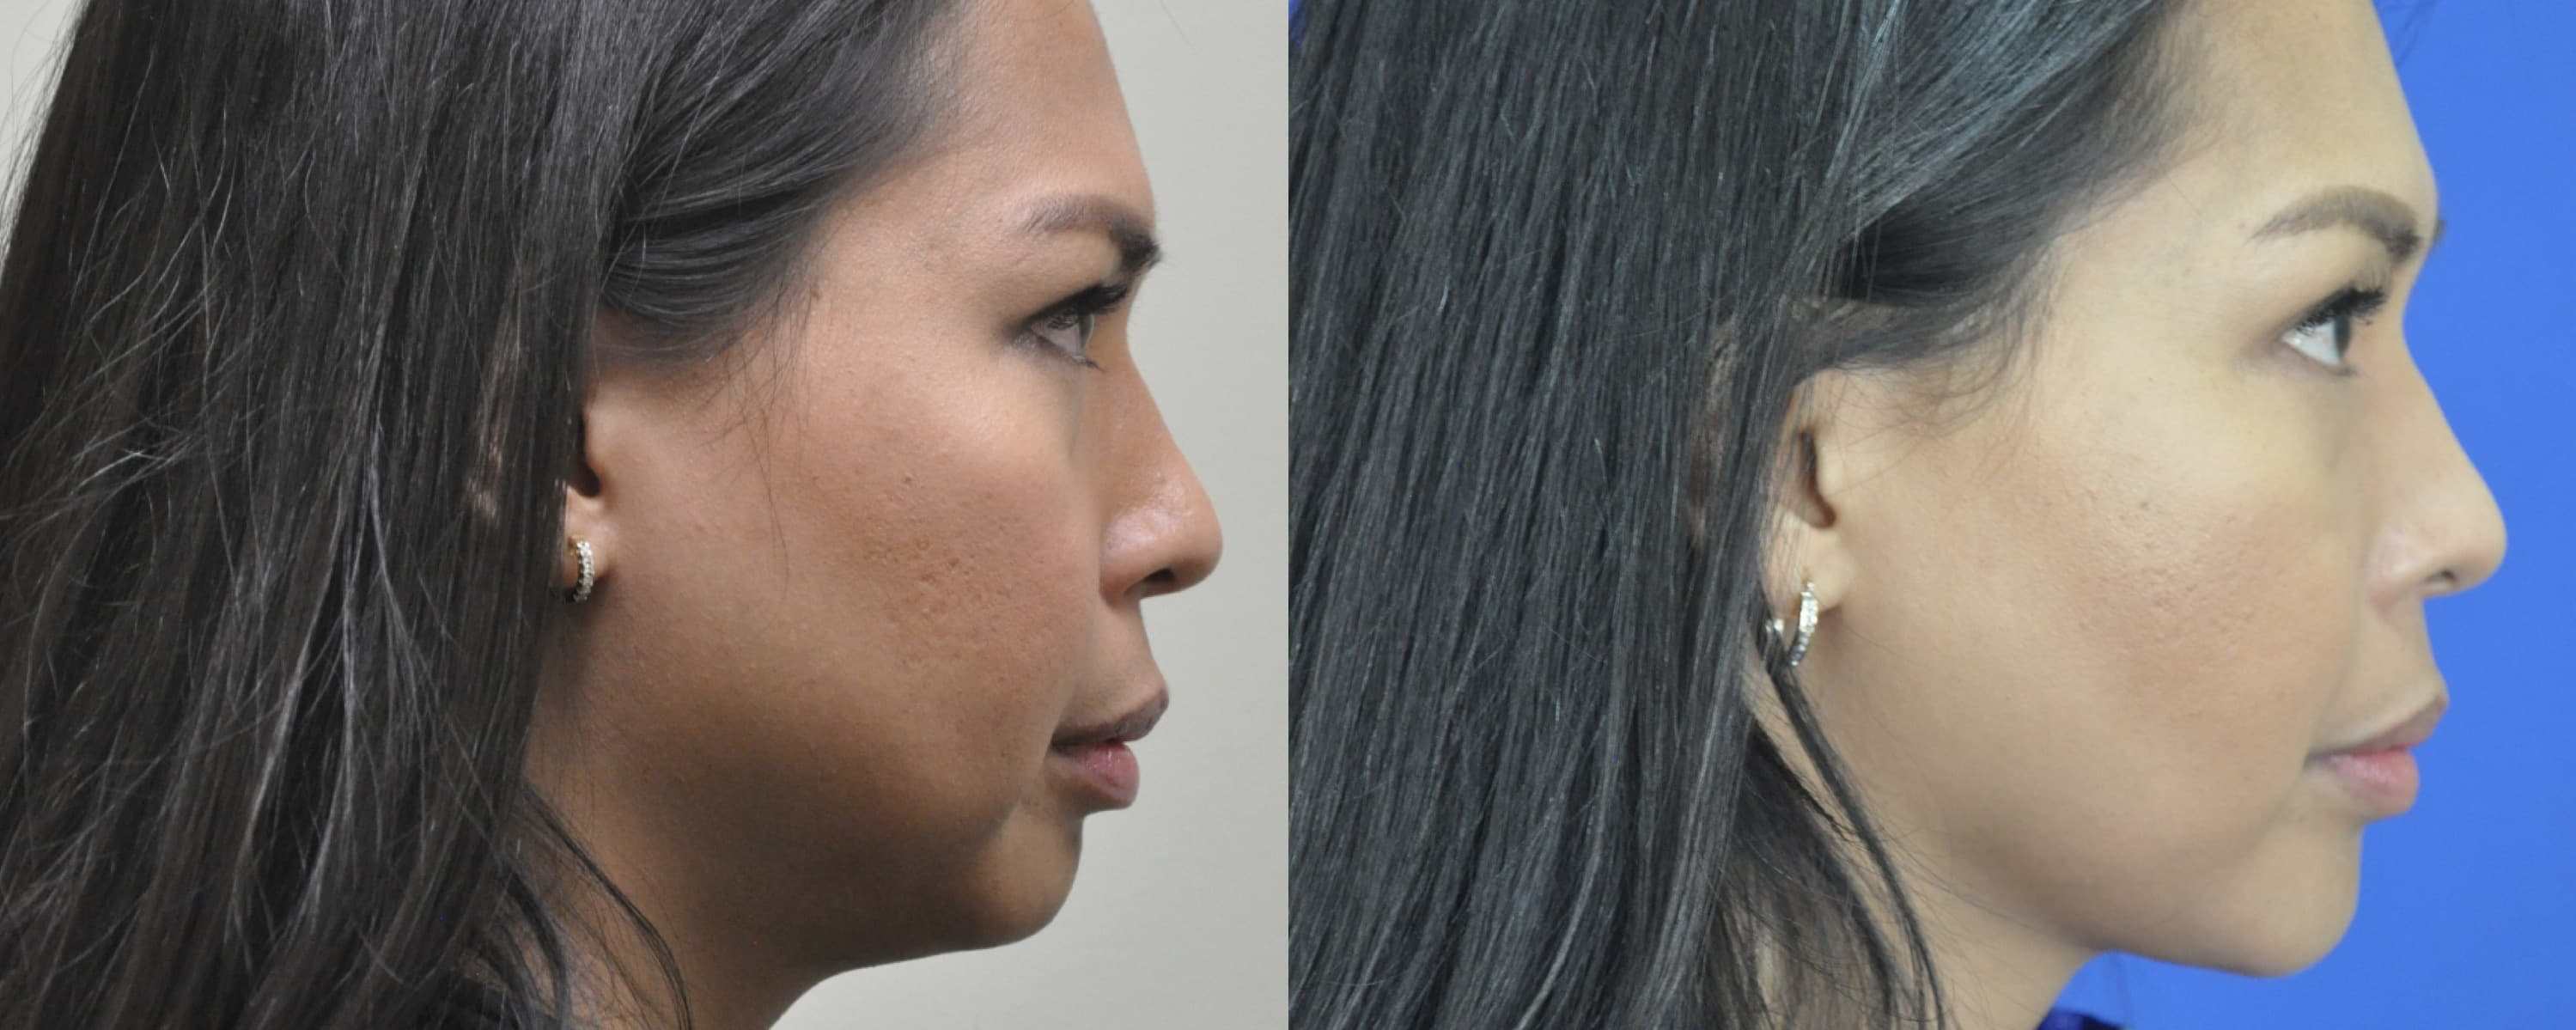 Chin Plastic Surgery Before And After 1